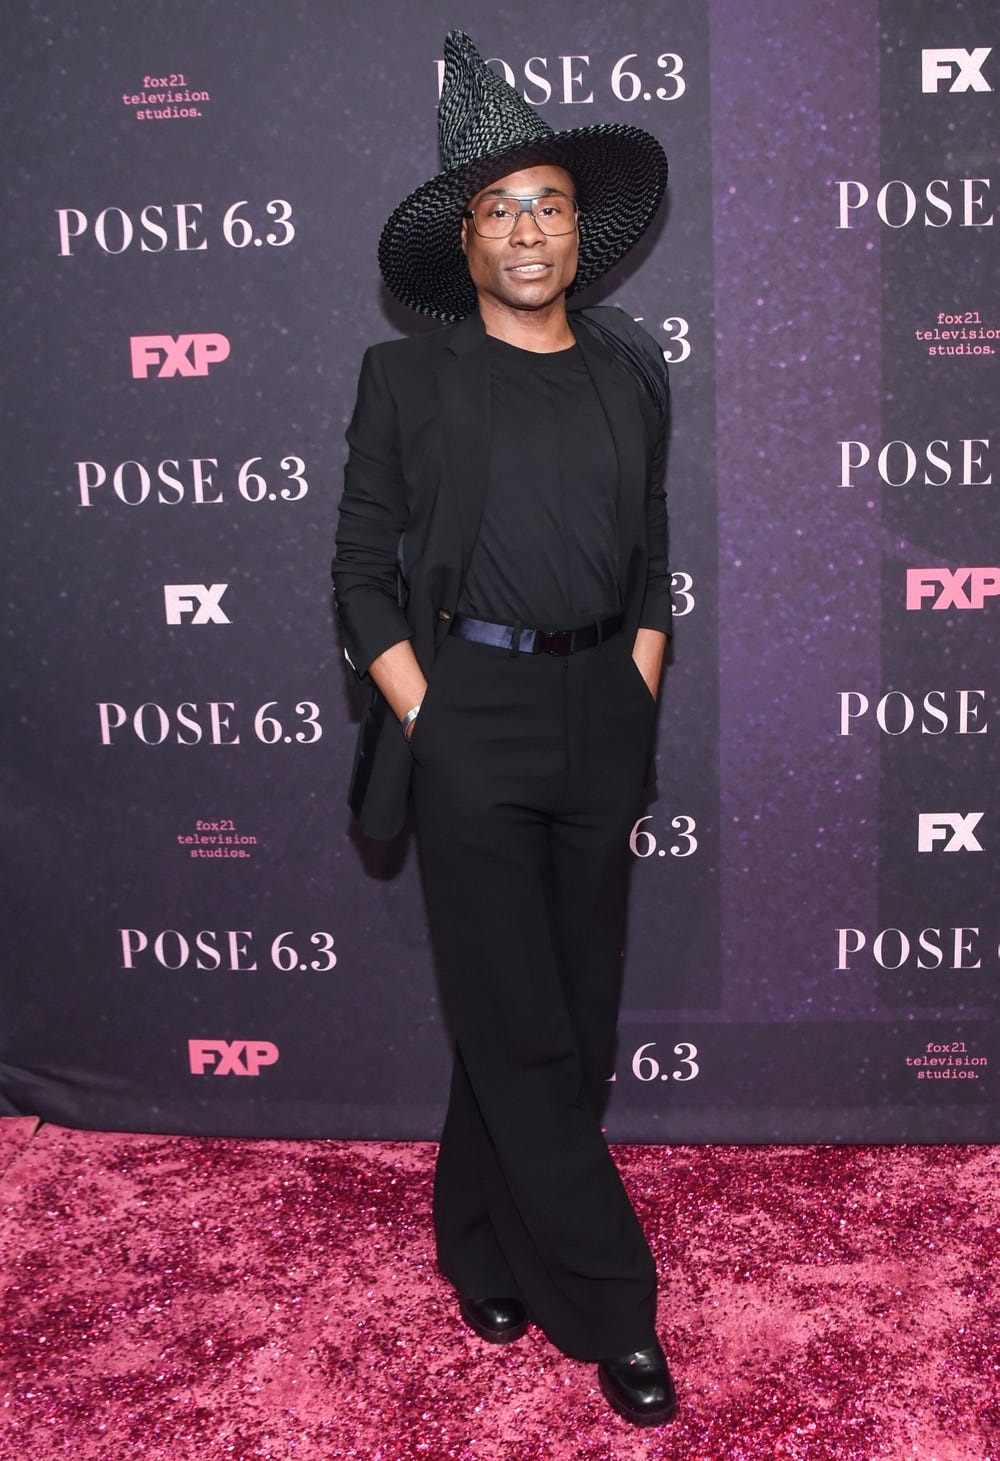 Billy Porter wearing an all black outfit with stylish witch-like hat